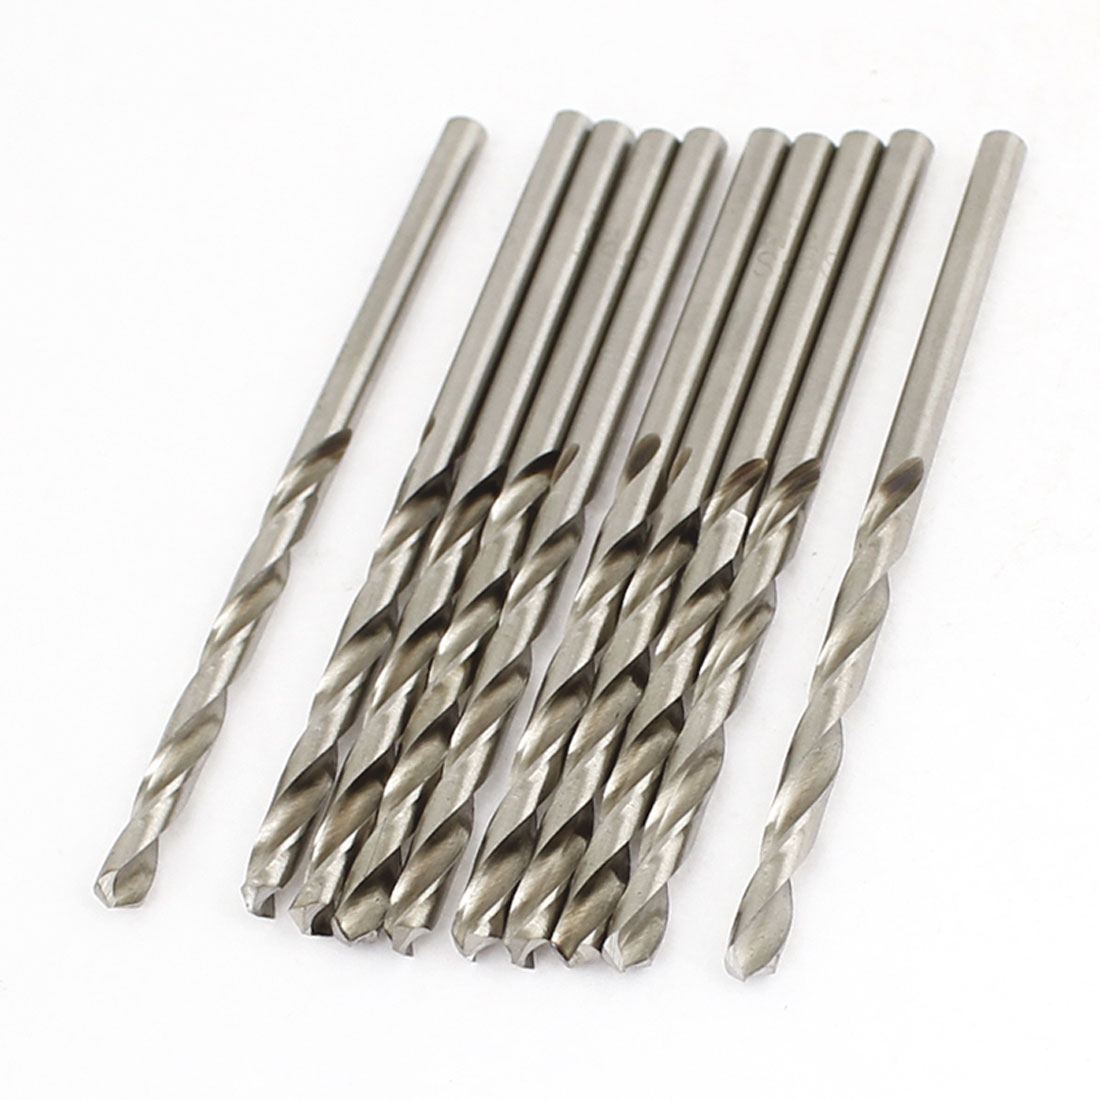 3.1mm Dia Split Point 64mm Long High Speed Steel Twist Drilling Bits 10 Pcs